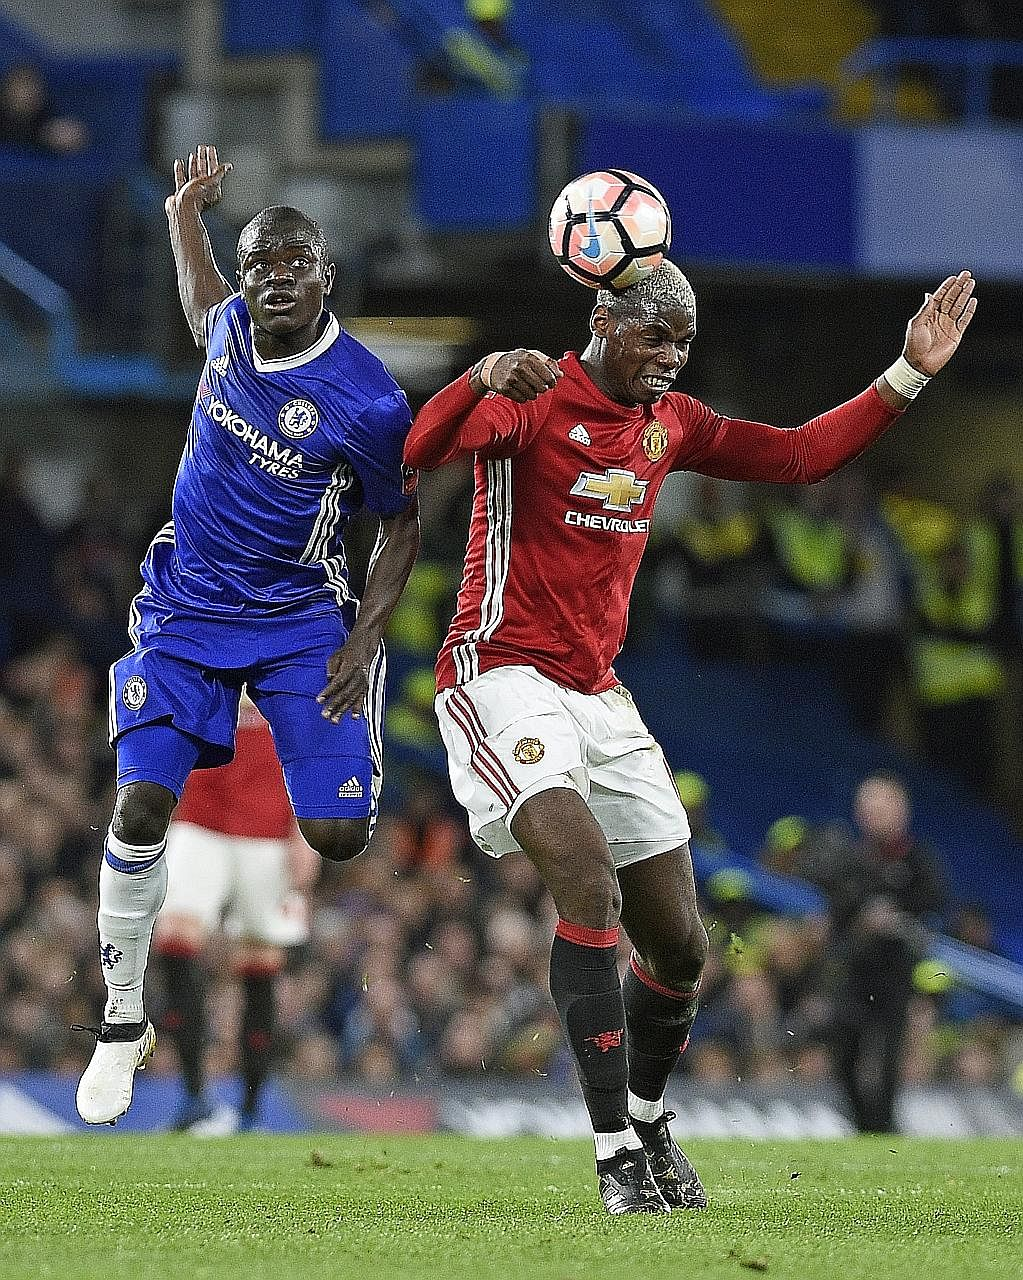 Chelsea's midfield dynamo N'Golo Kante outshining his Manchester United counterpart Paul Pogba, scoring the only goal in their 1-0 FA Cup quarter-final win. Kante has been the heartbeat of the Blues as they run away with the Premier League.